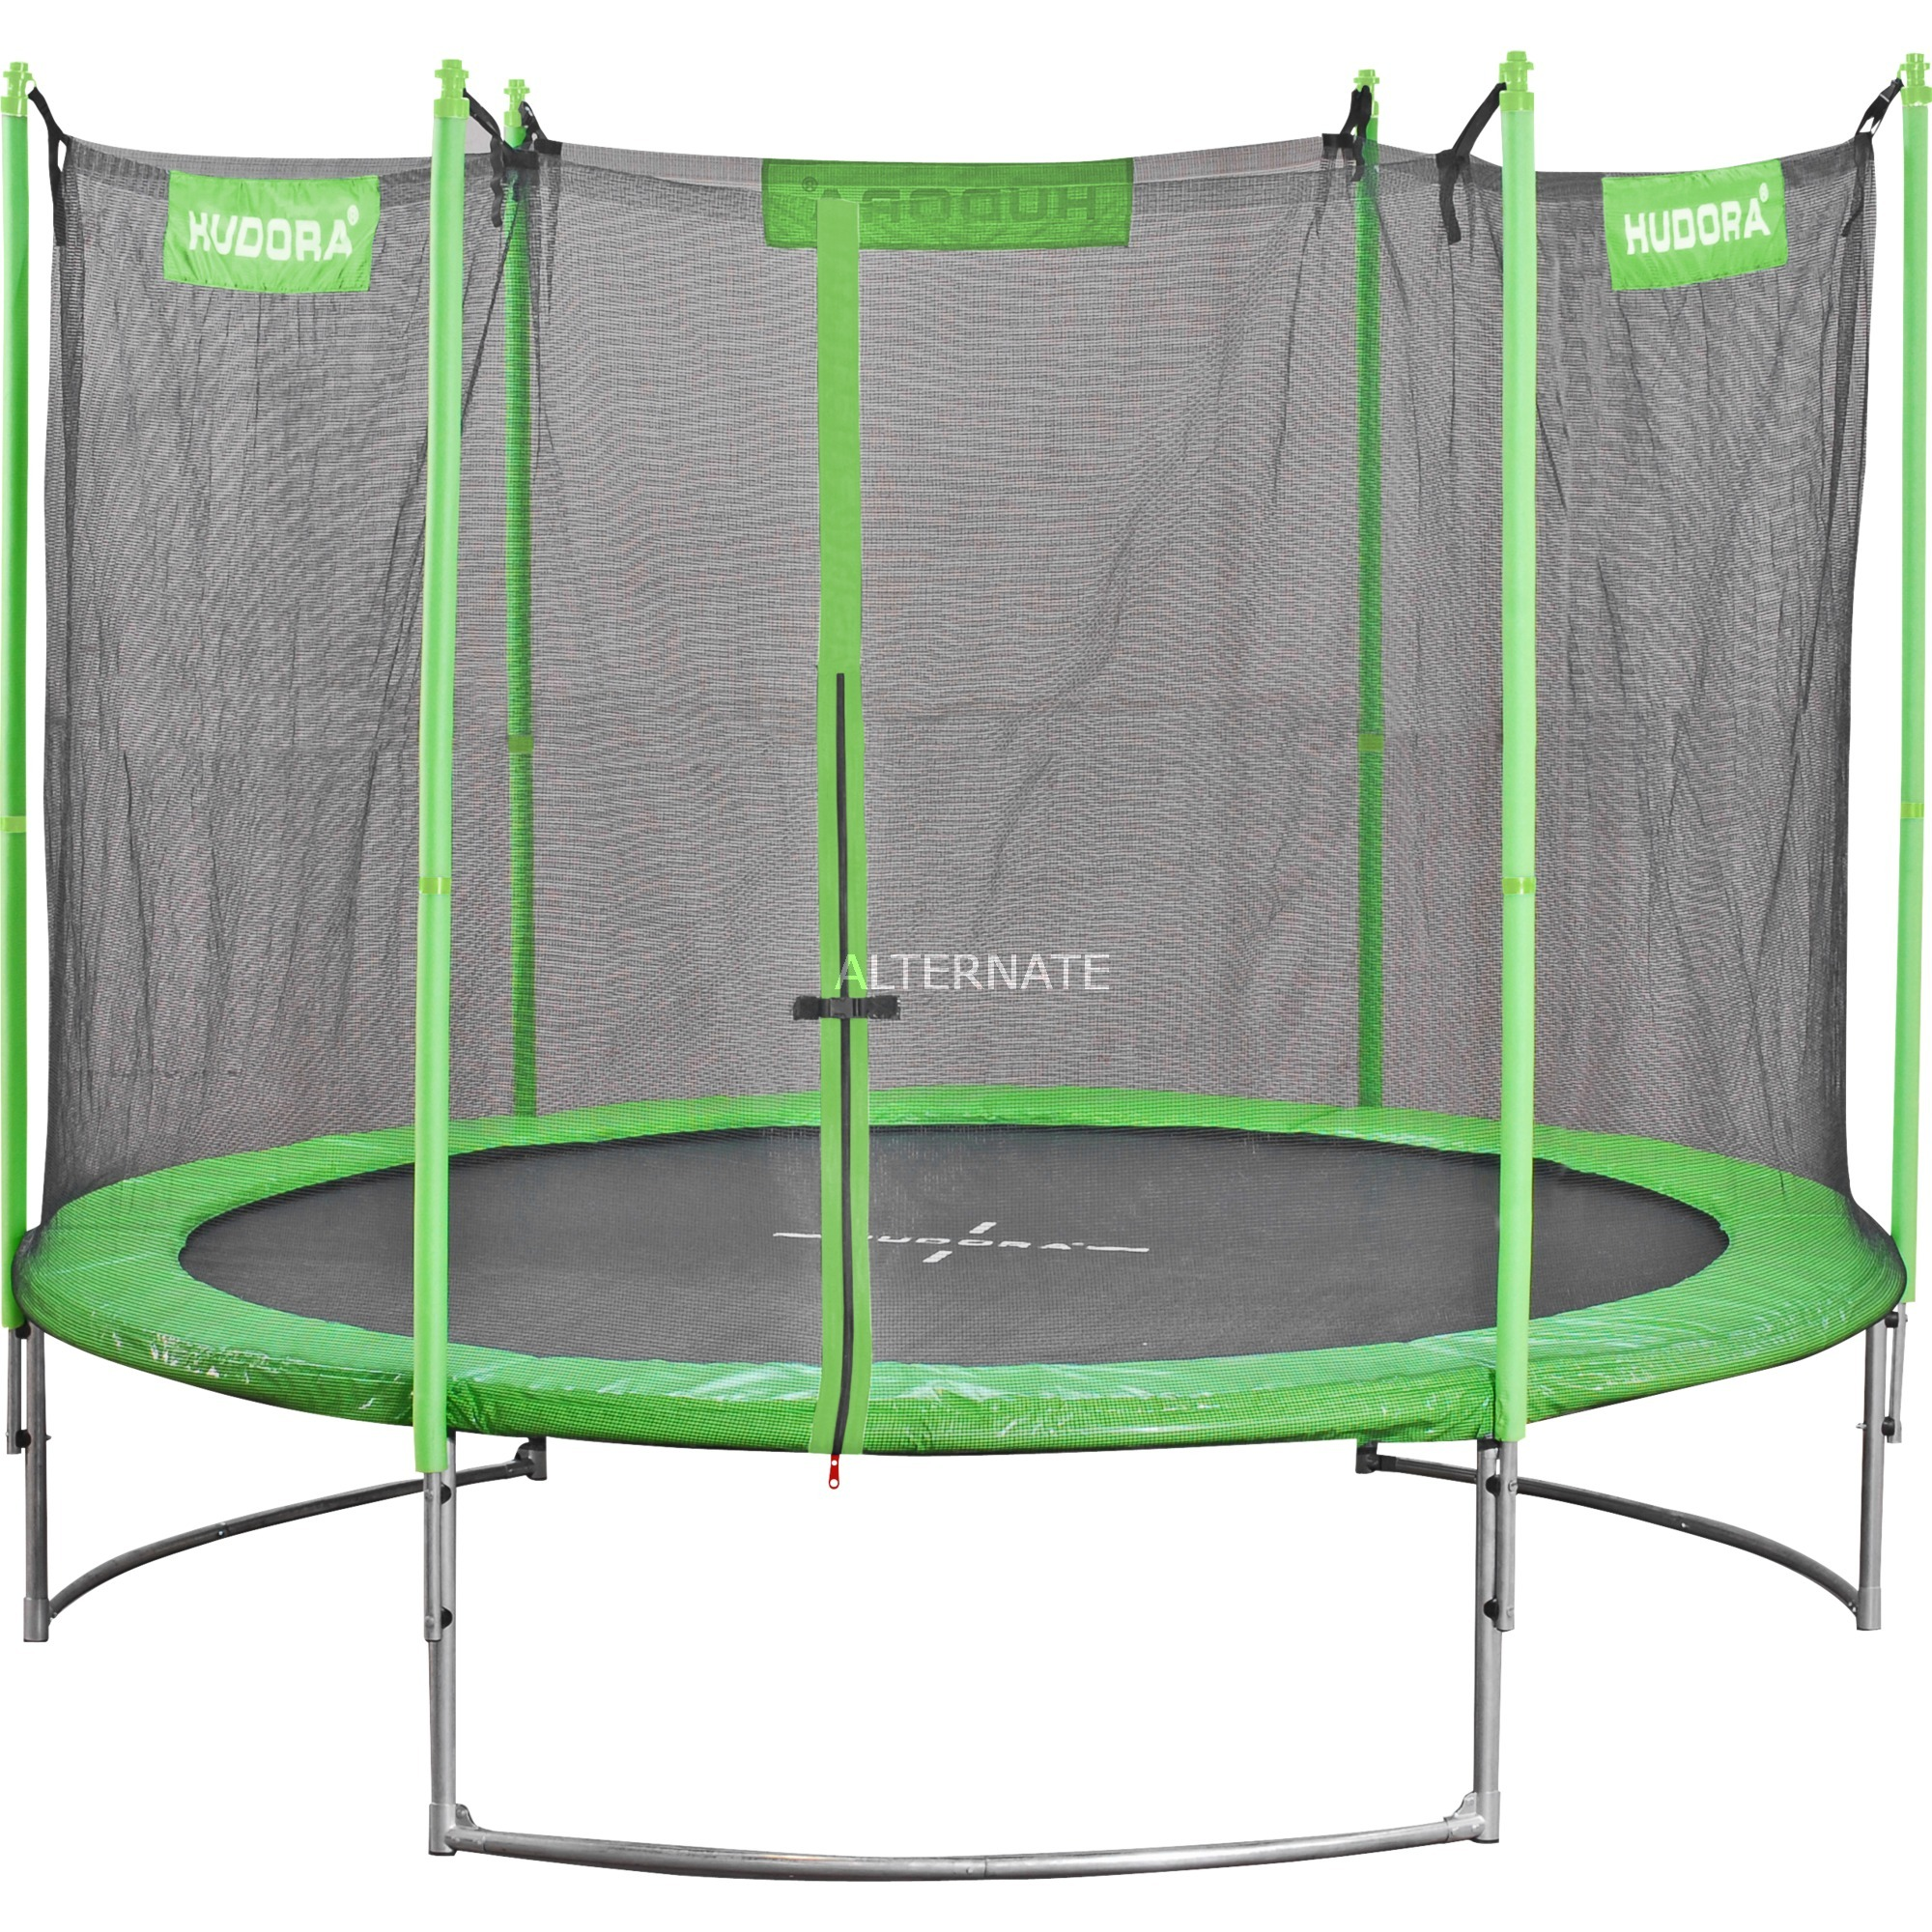 family-trampolin-250-fitnessredskab